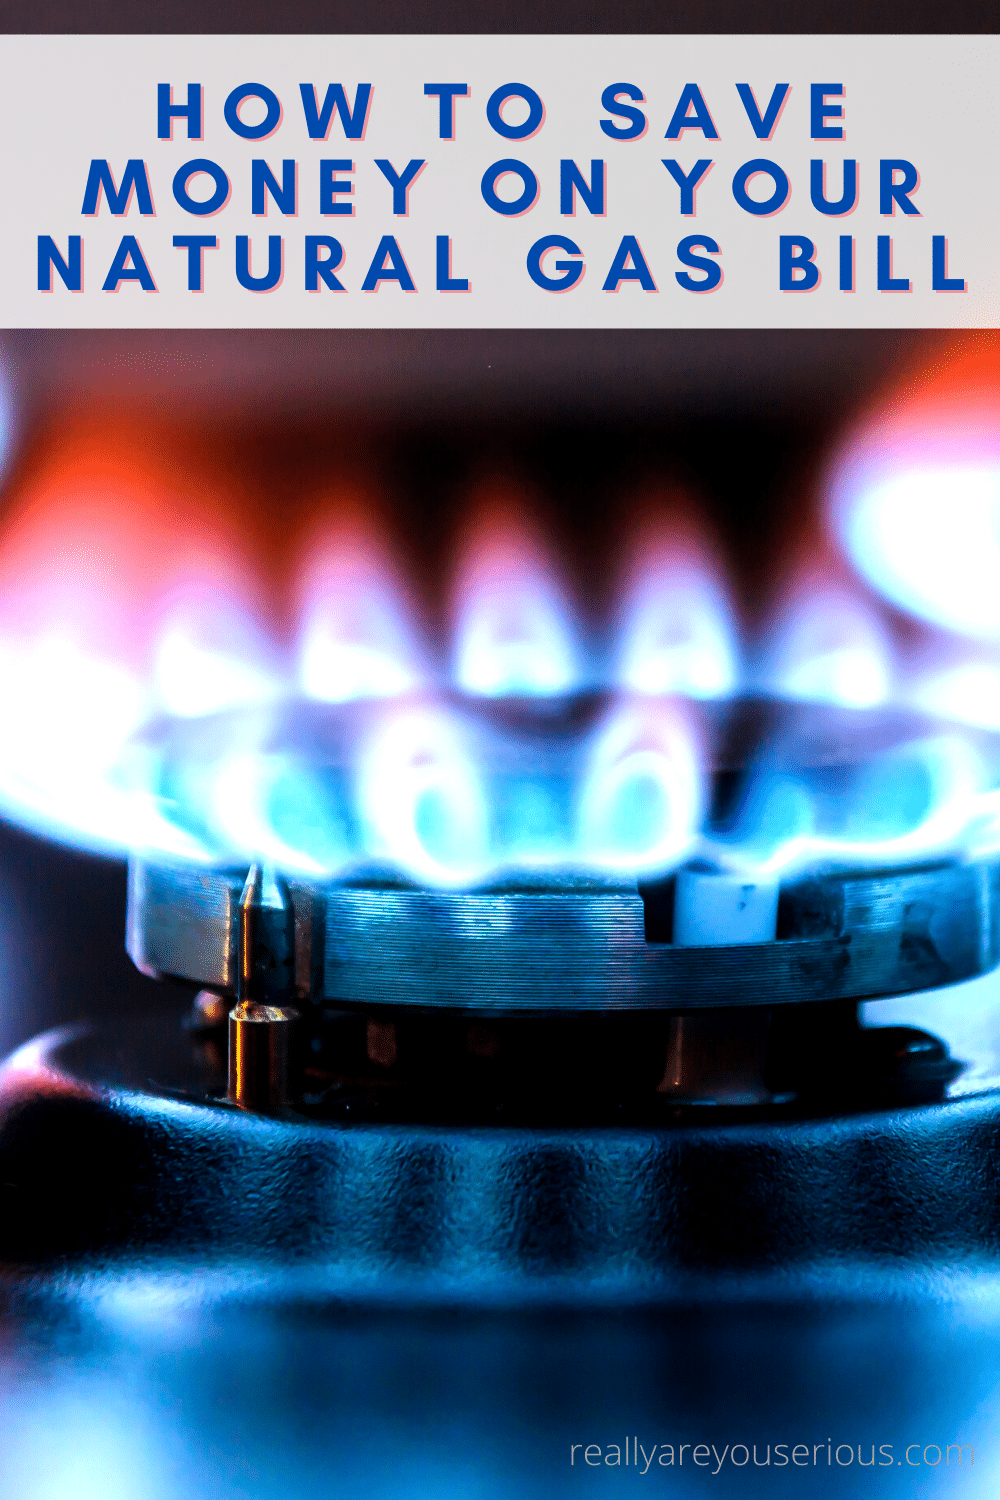 How to save money on your natural gas bill